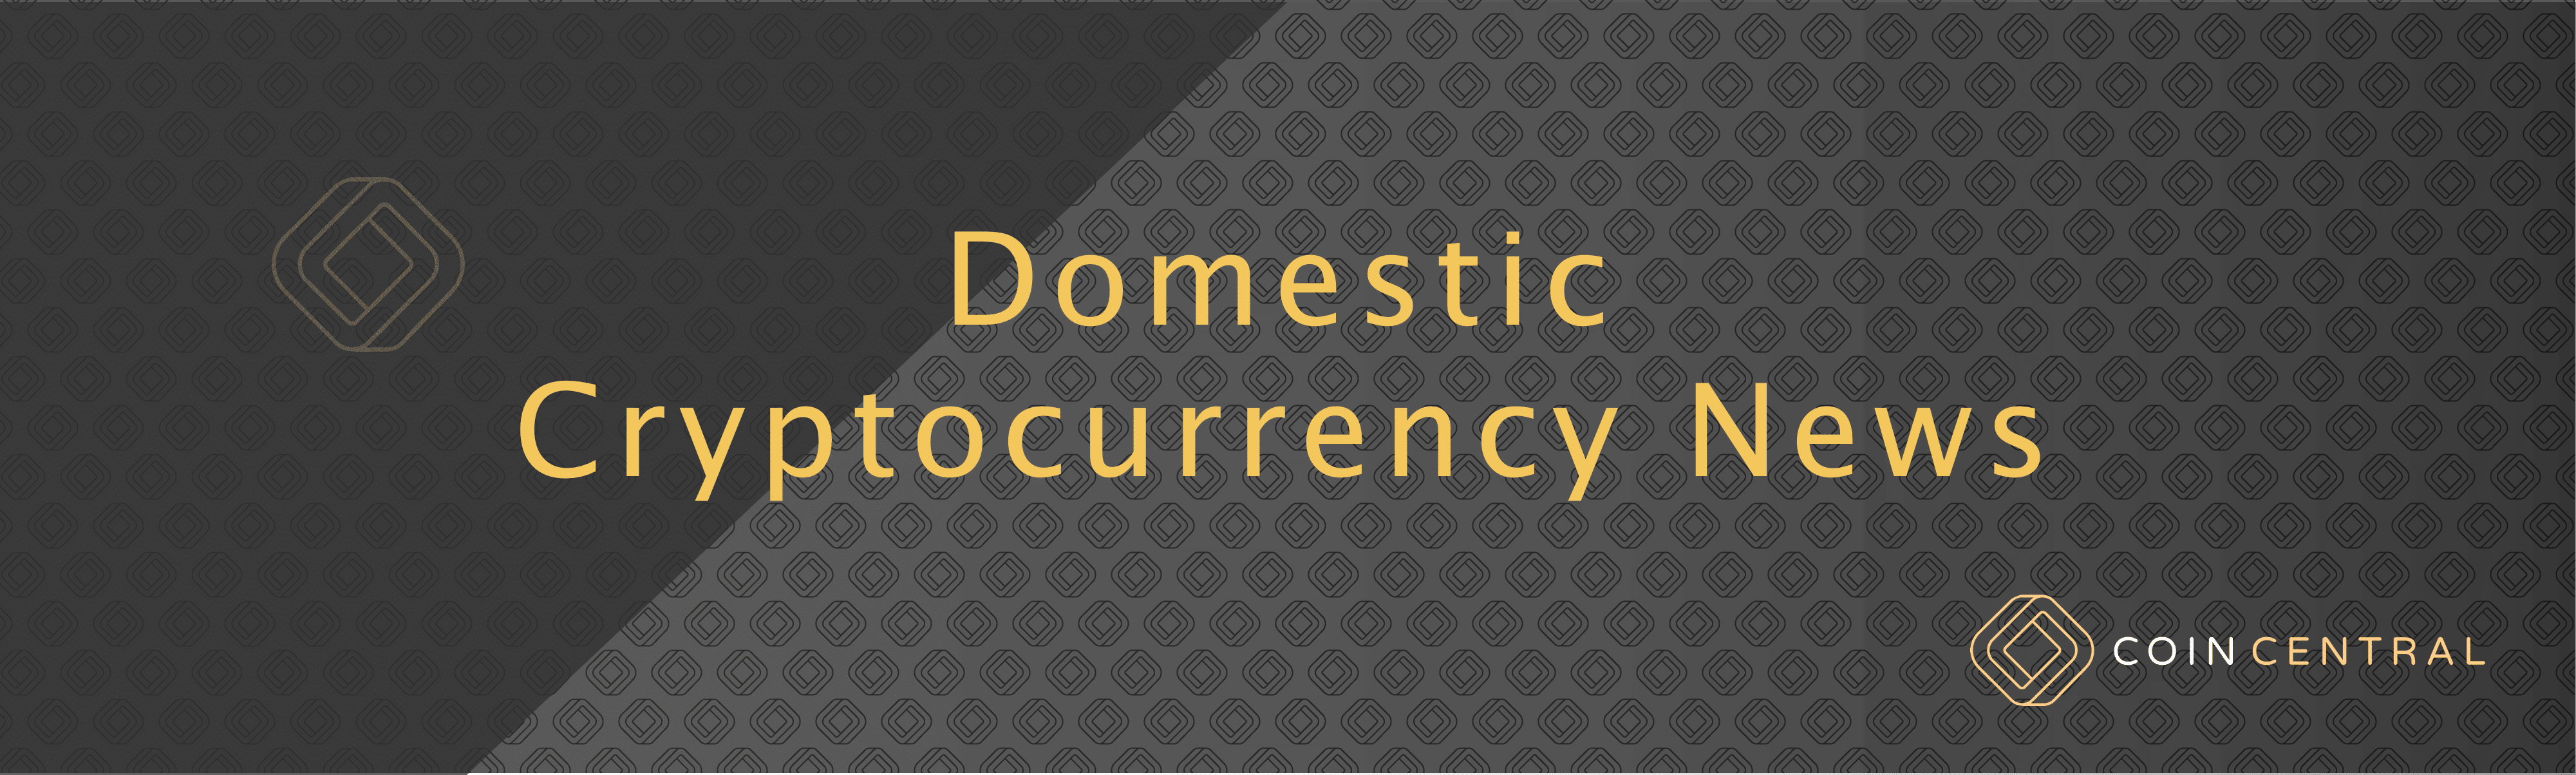 Domestic Cryptocurrency News